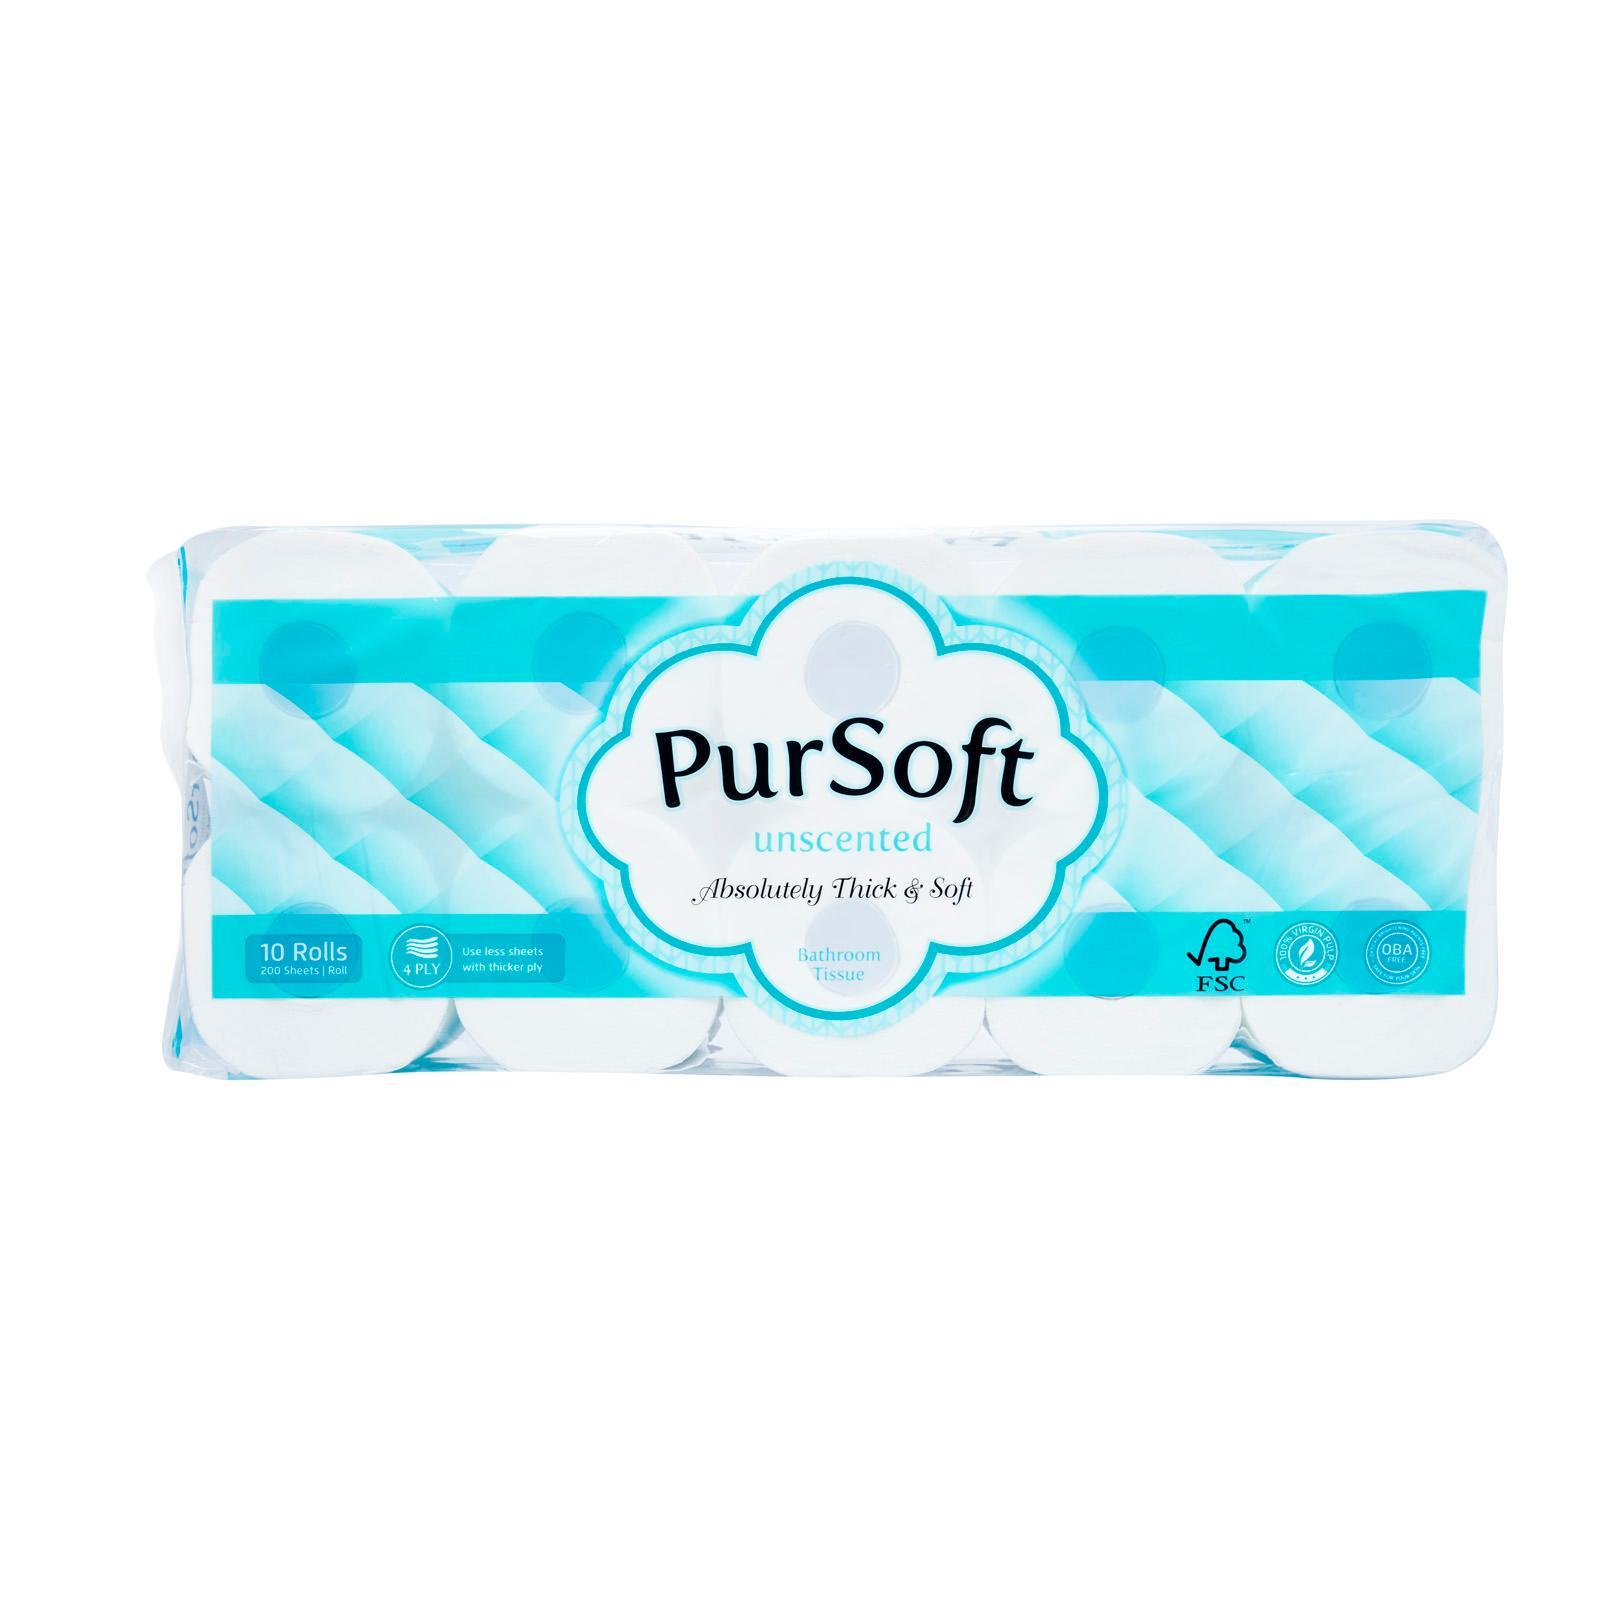 PurSoft Unscented Core 4-Ply Toilet Tissue - 10 Rolls